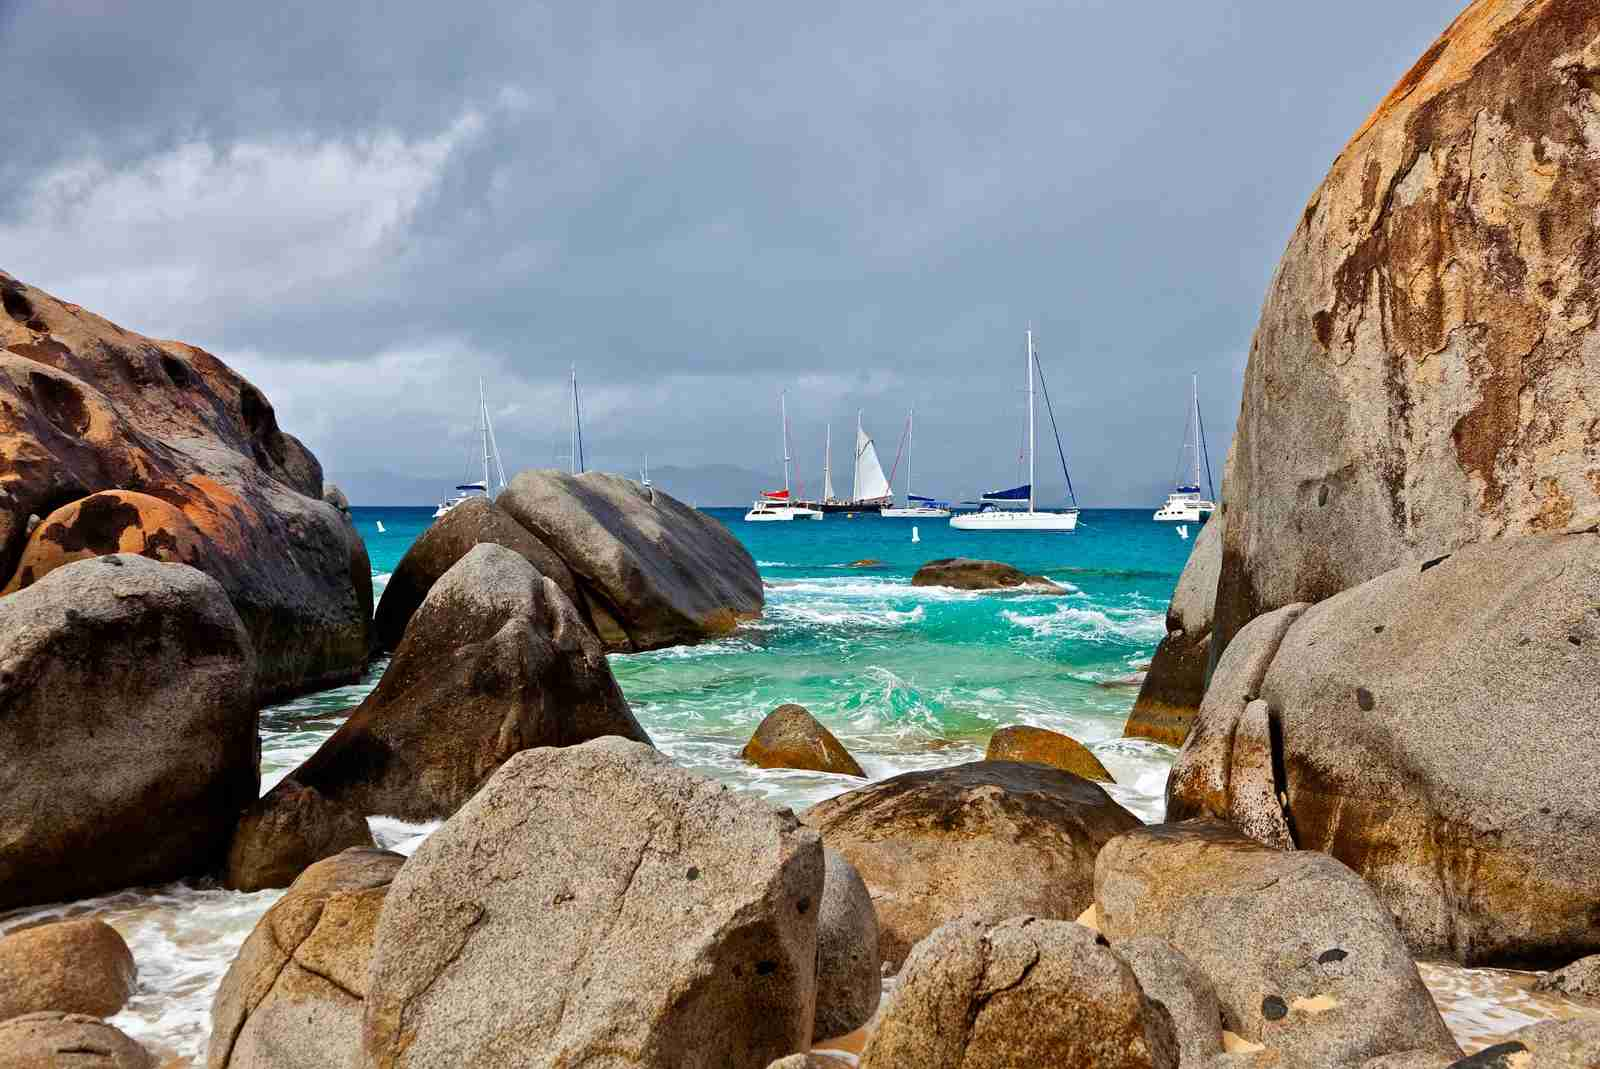 The Baths at the southern end of Virgin Gorda. (Photo by Danita Delimont/Getty Images)